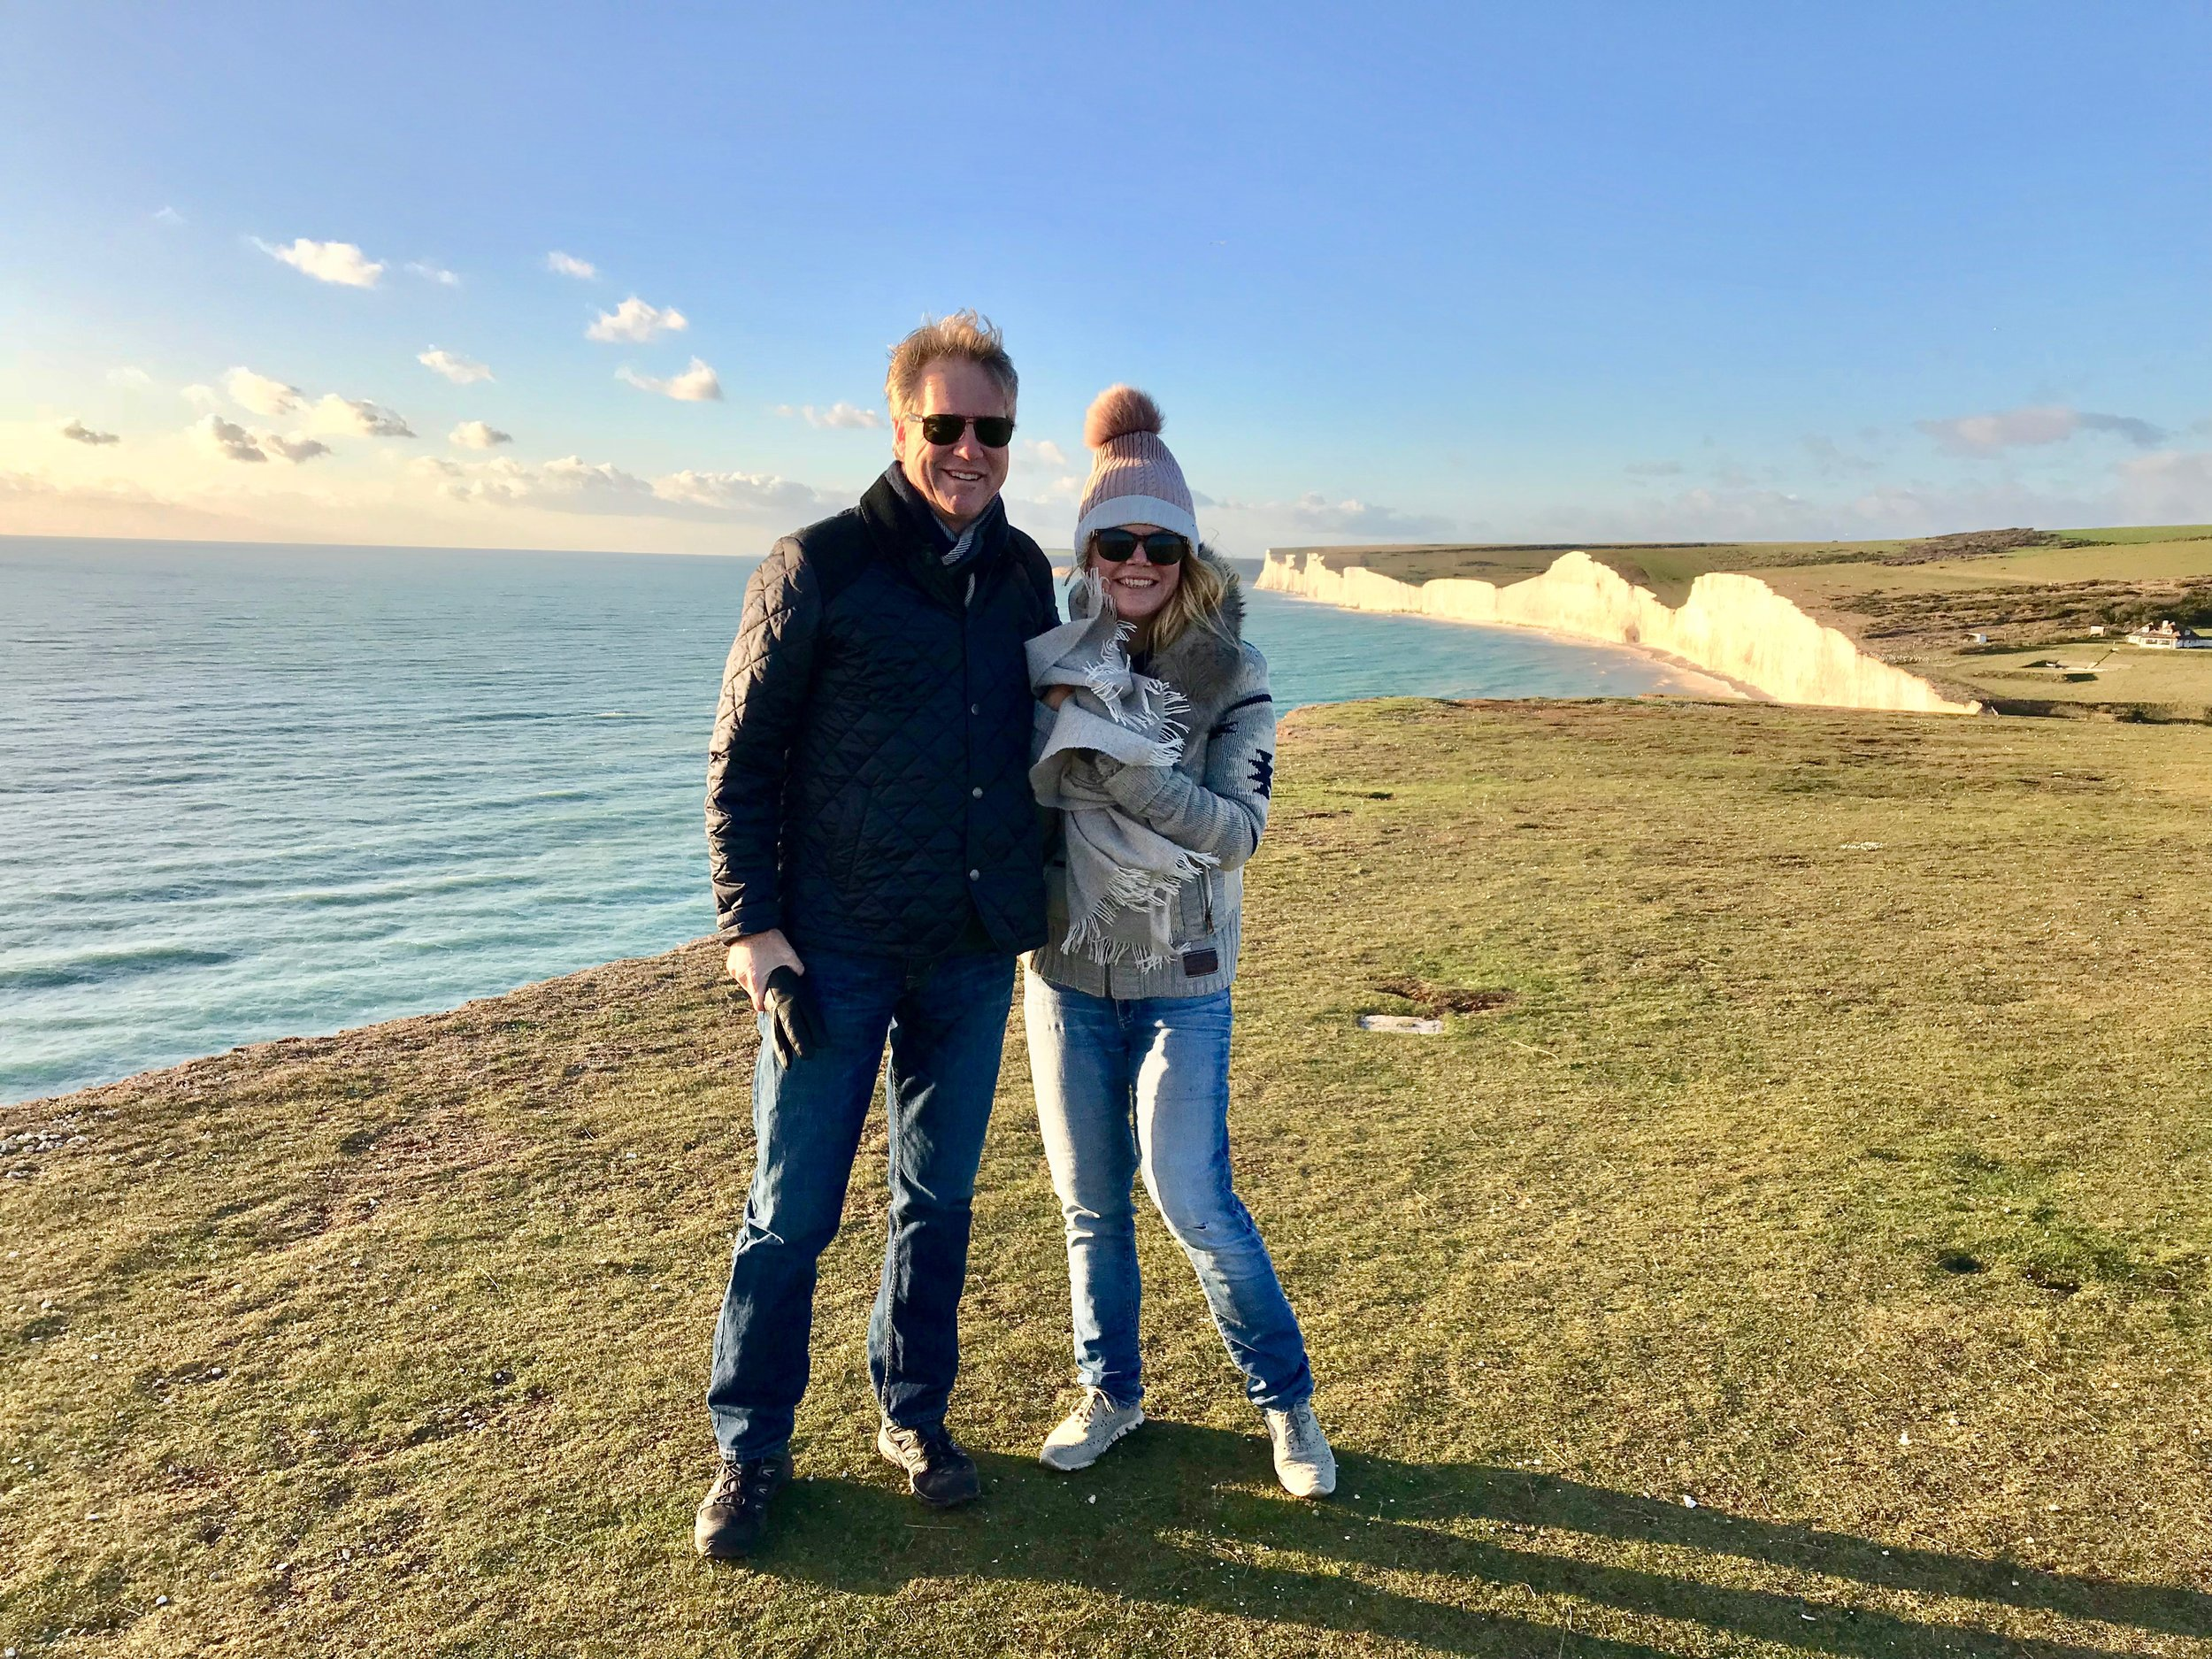 A Broad In London at The Seven Sisters